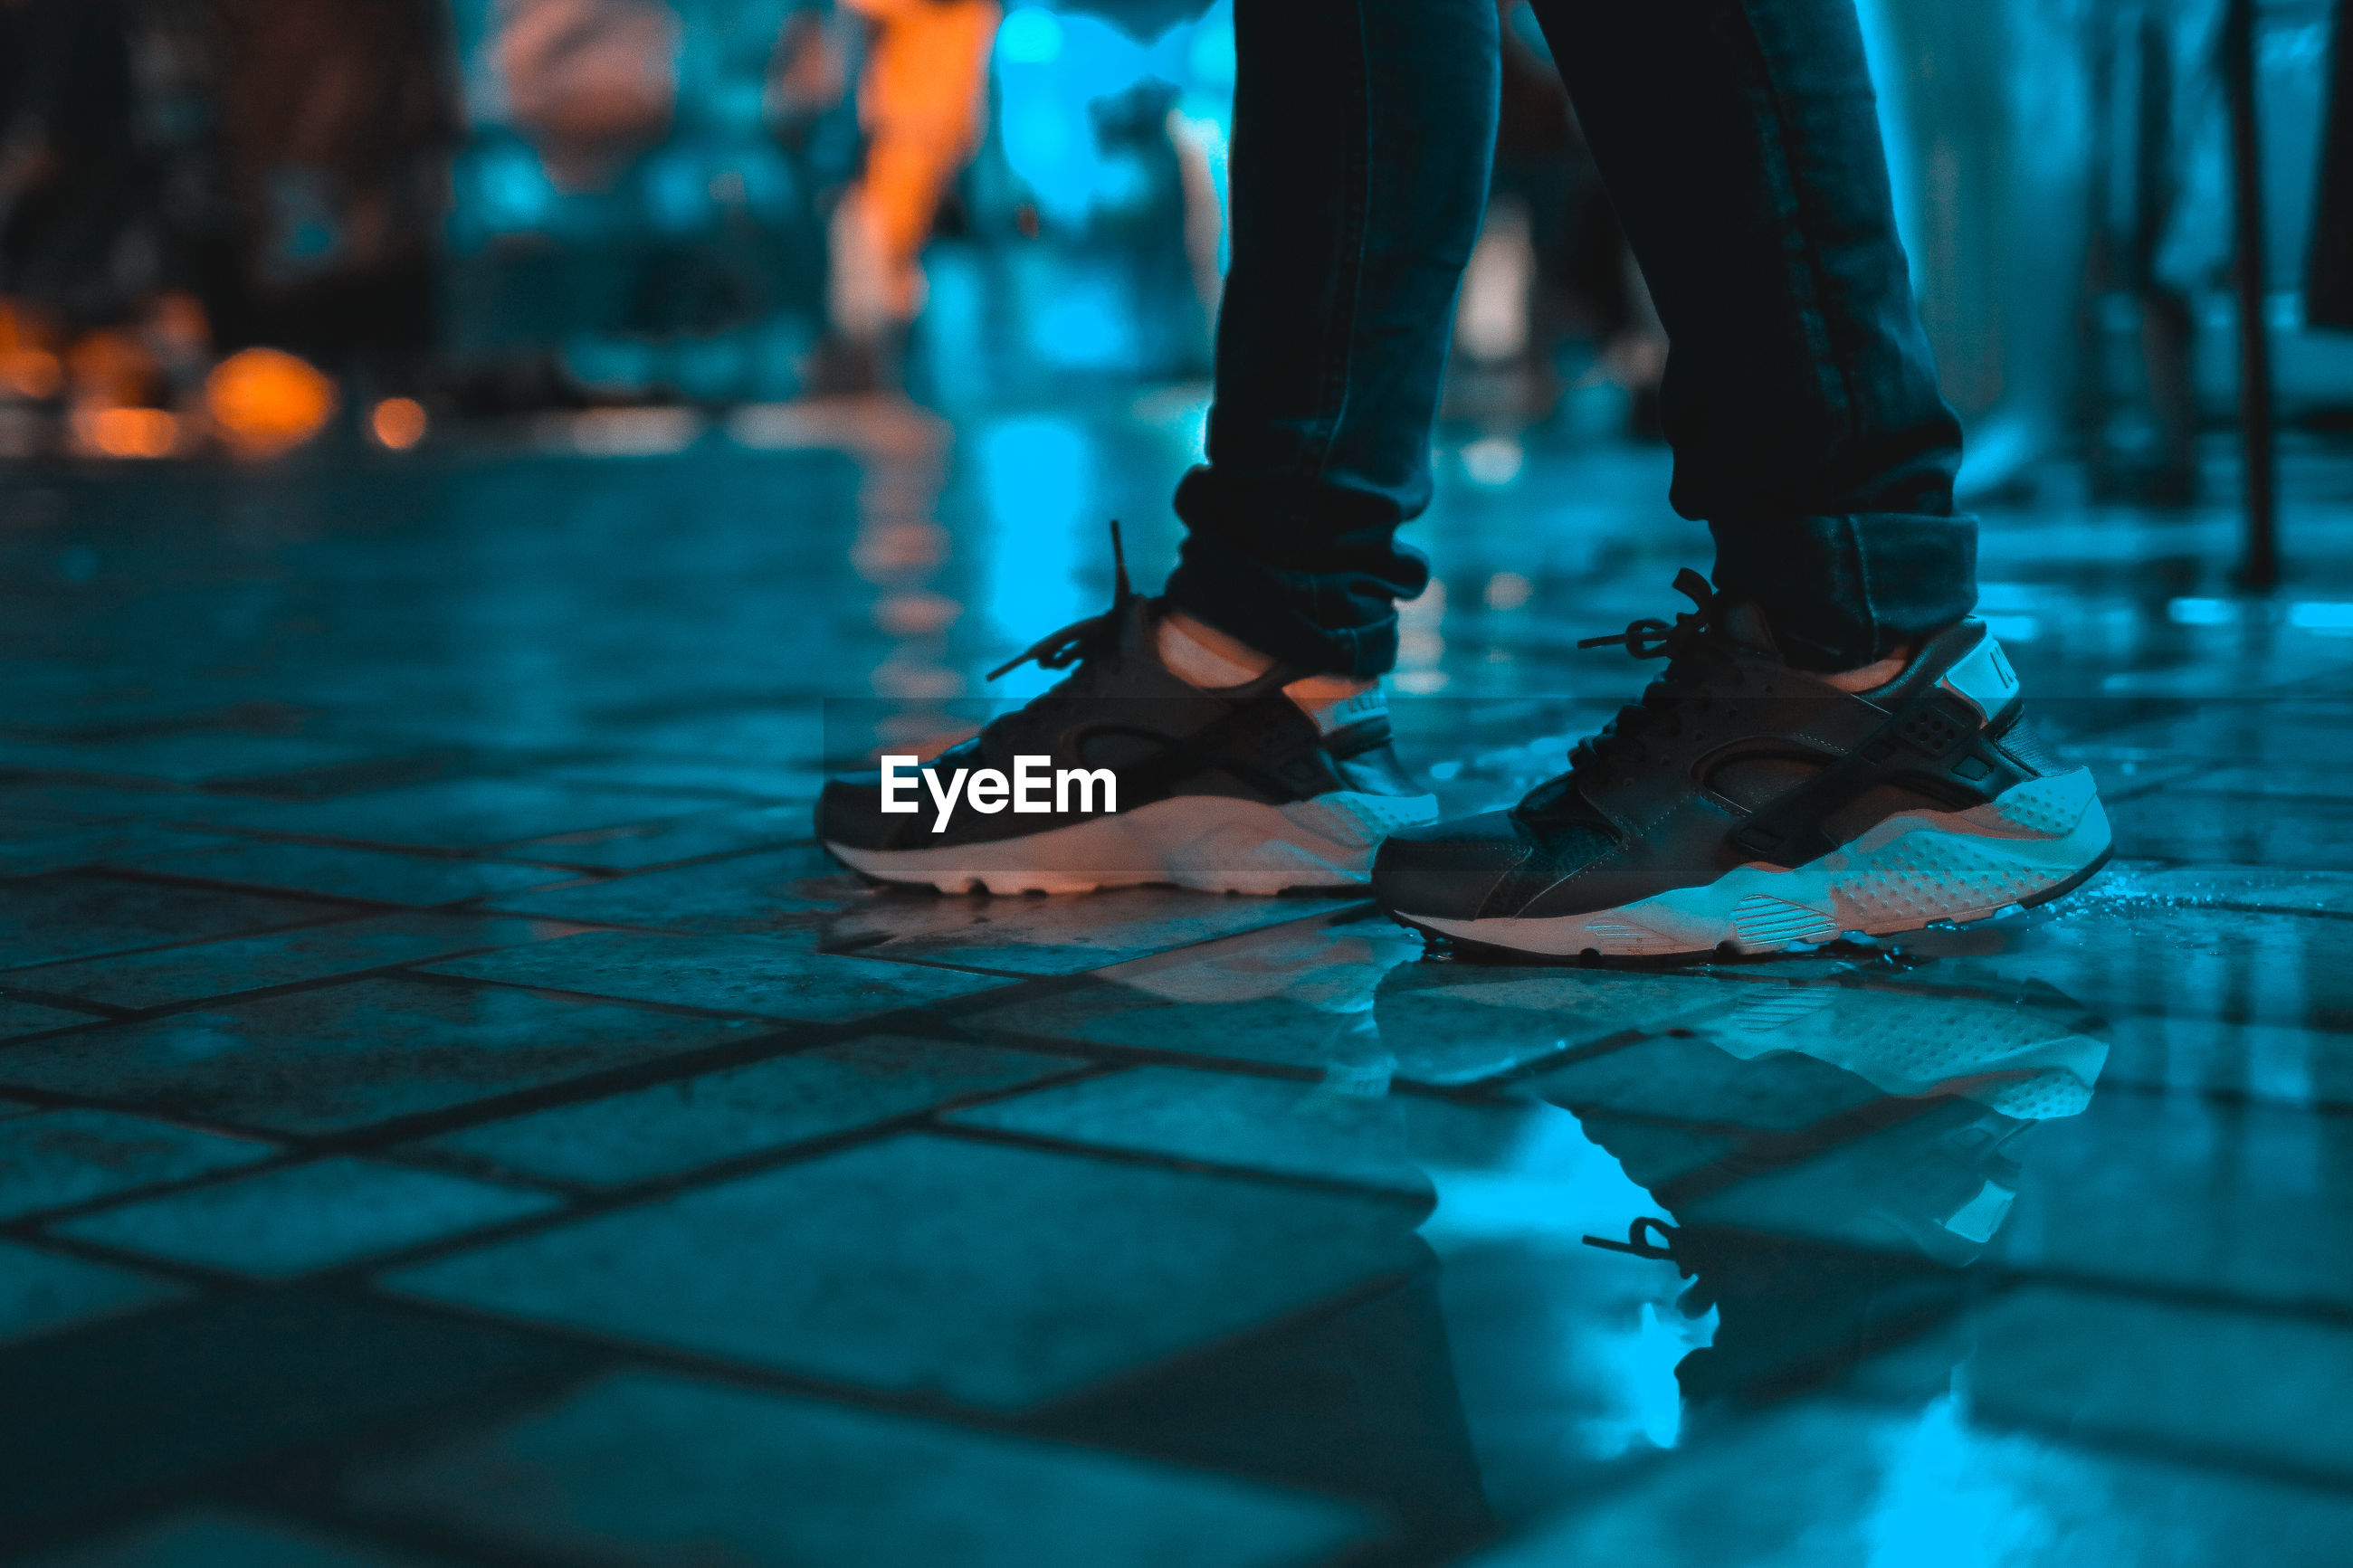 Low section of person standing on wet footpath at night